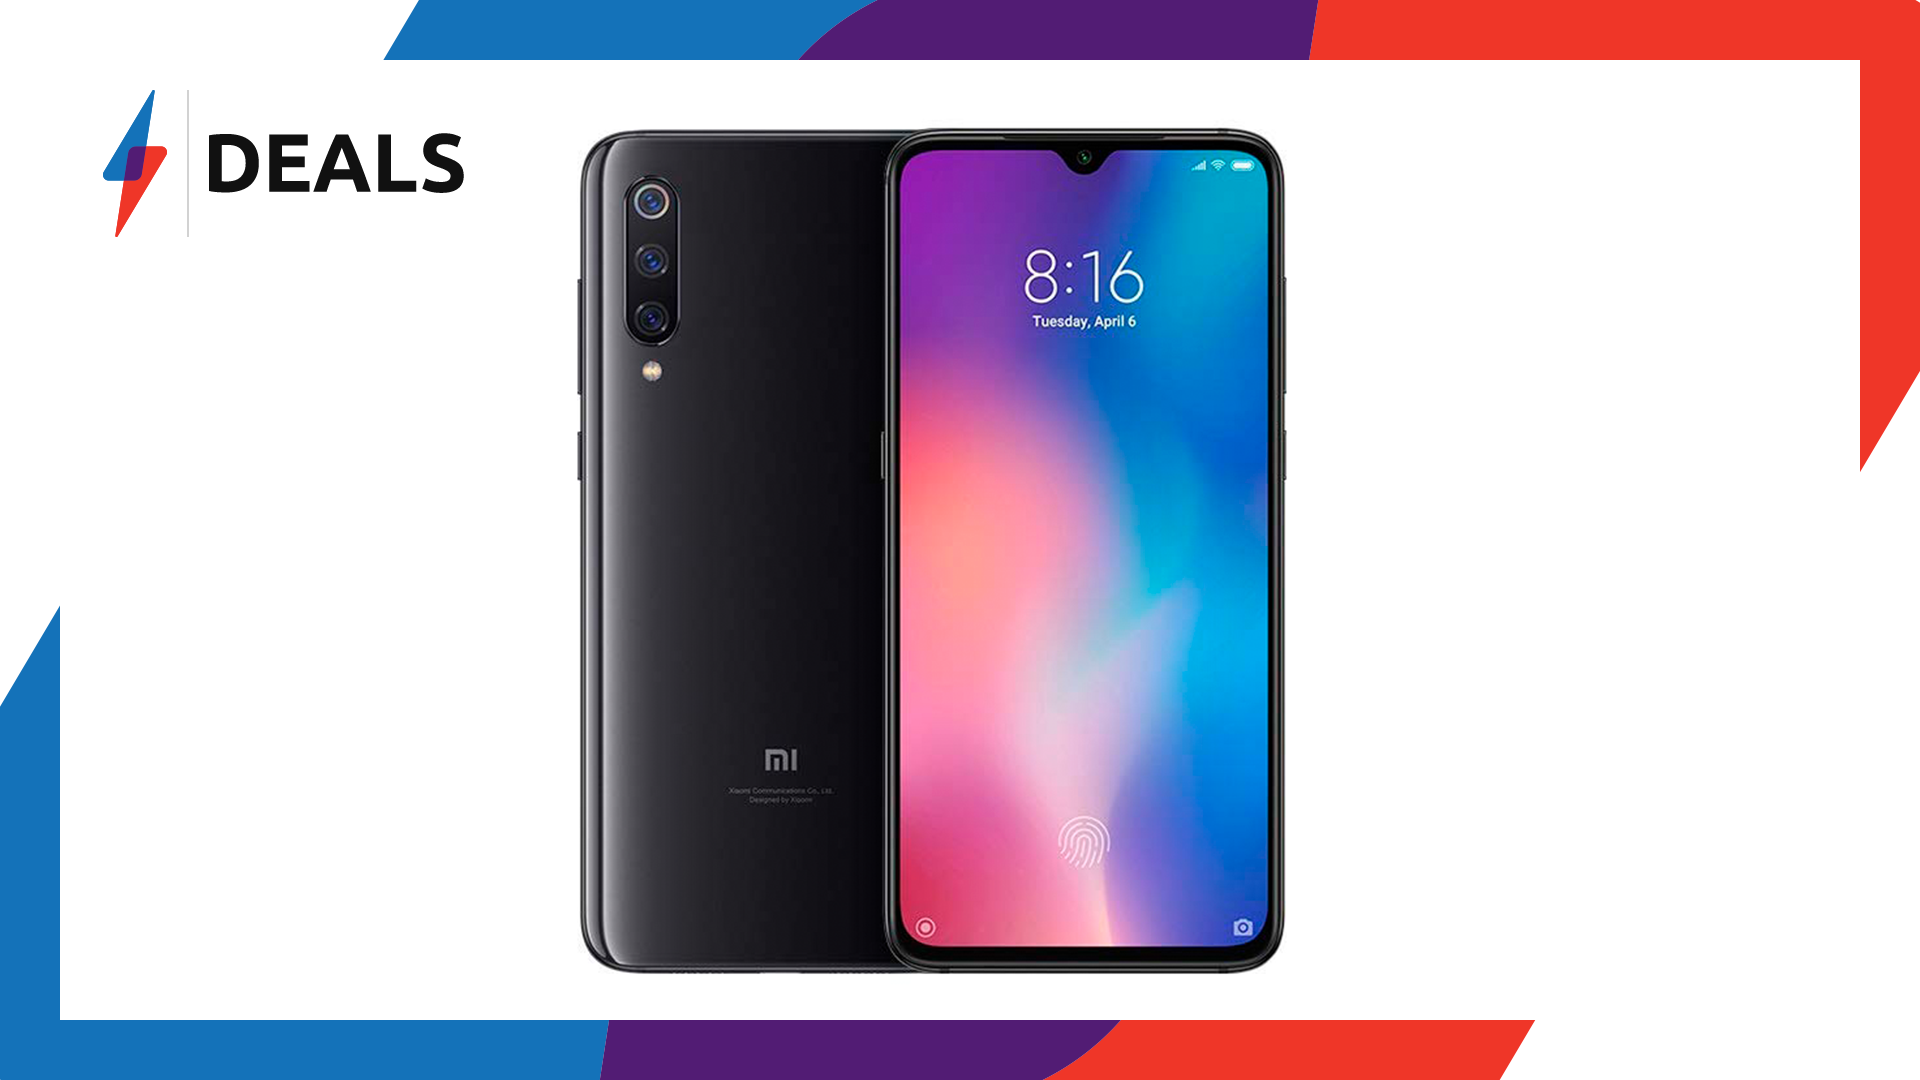 Even more affordable, you can now get the 10/10 Xiaomi Mi 9 for just £349